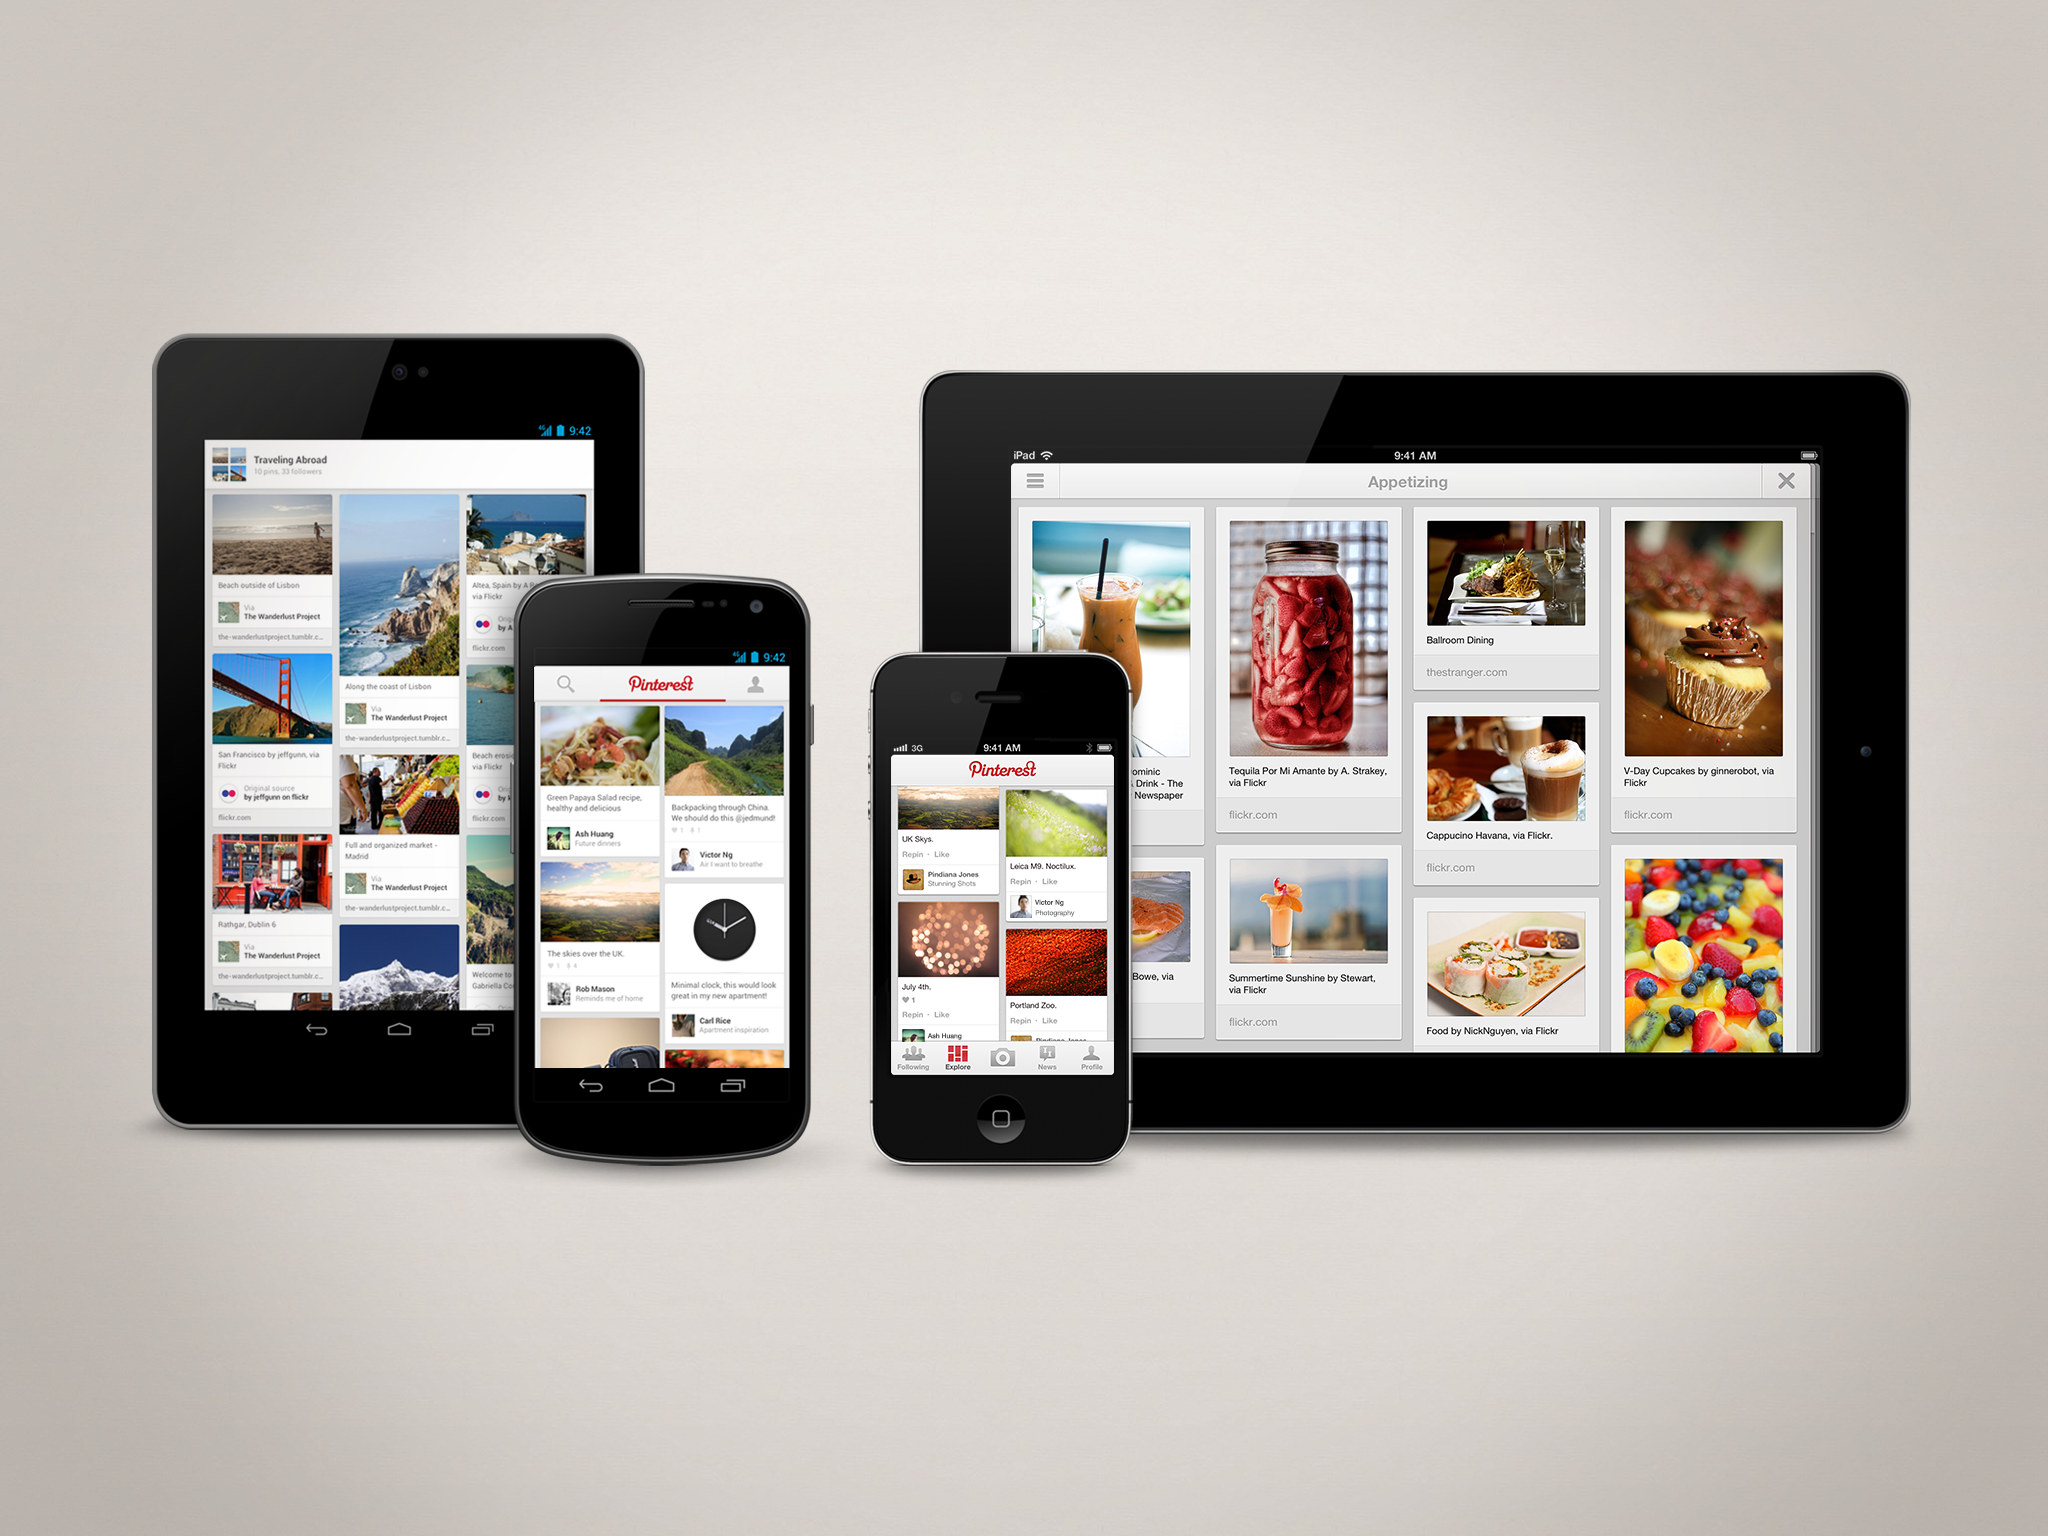 Pinterest v2.0 Released For iPad (iOS) And Android Devices